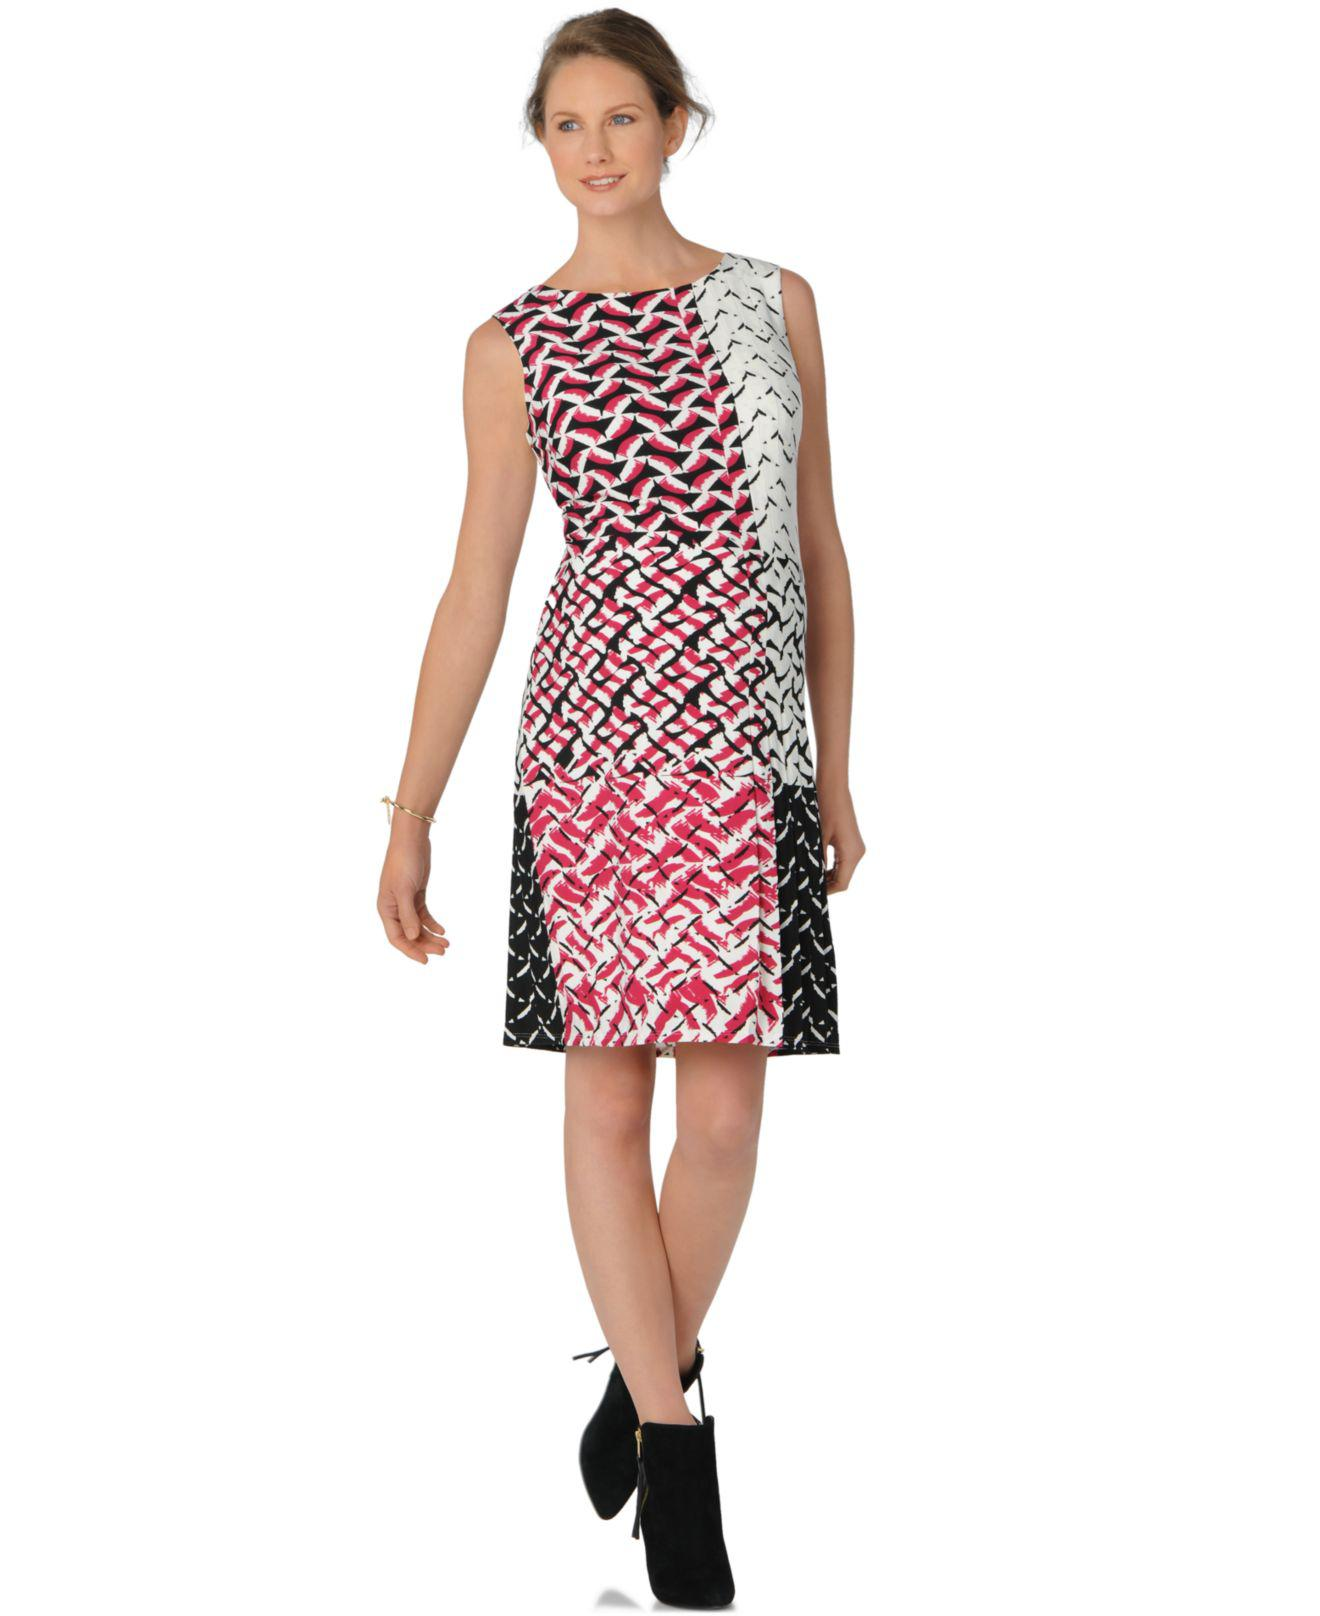 Maternity Formal dresses macys forecasting to wear in summer in 2019